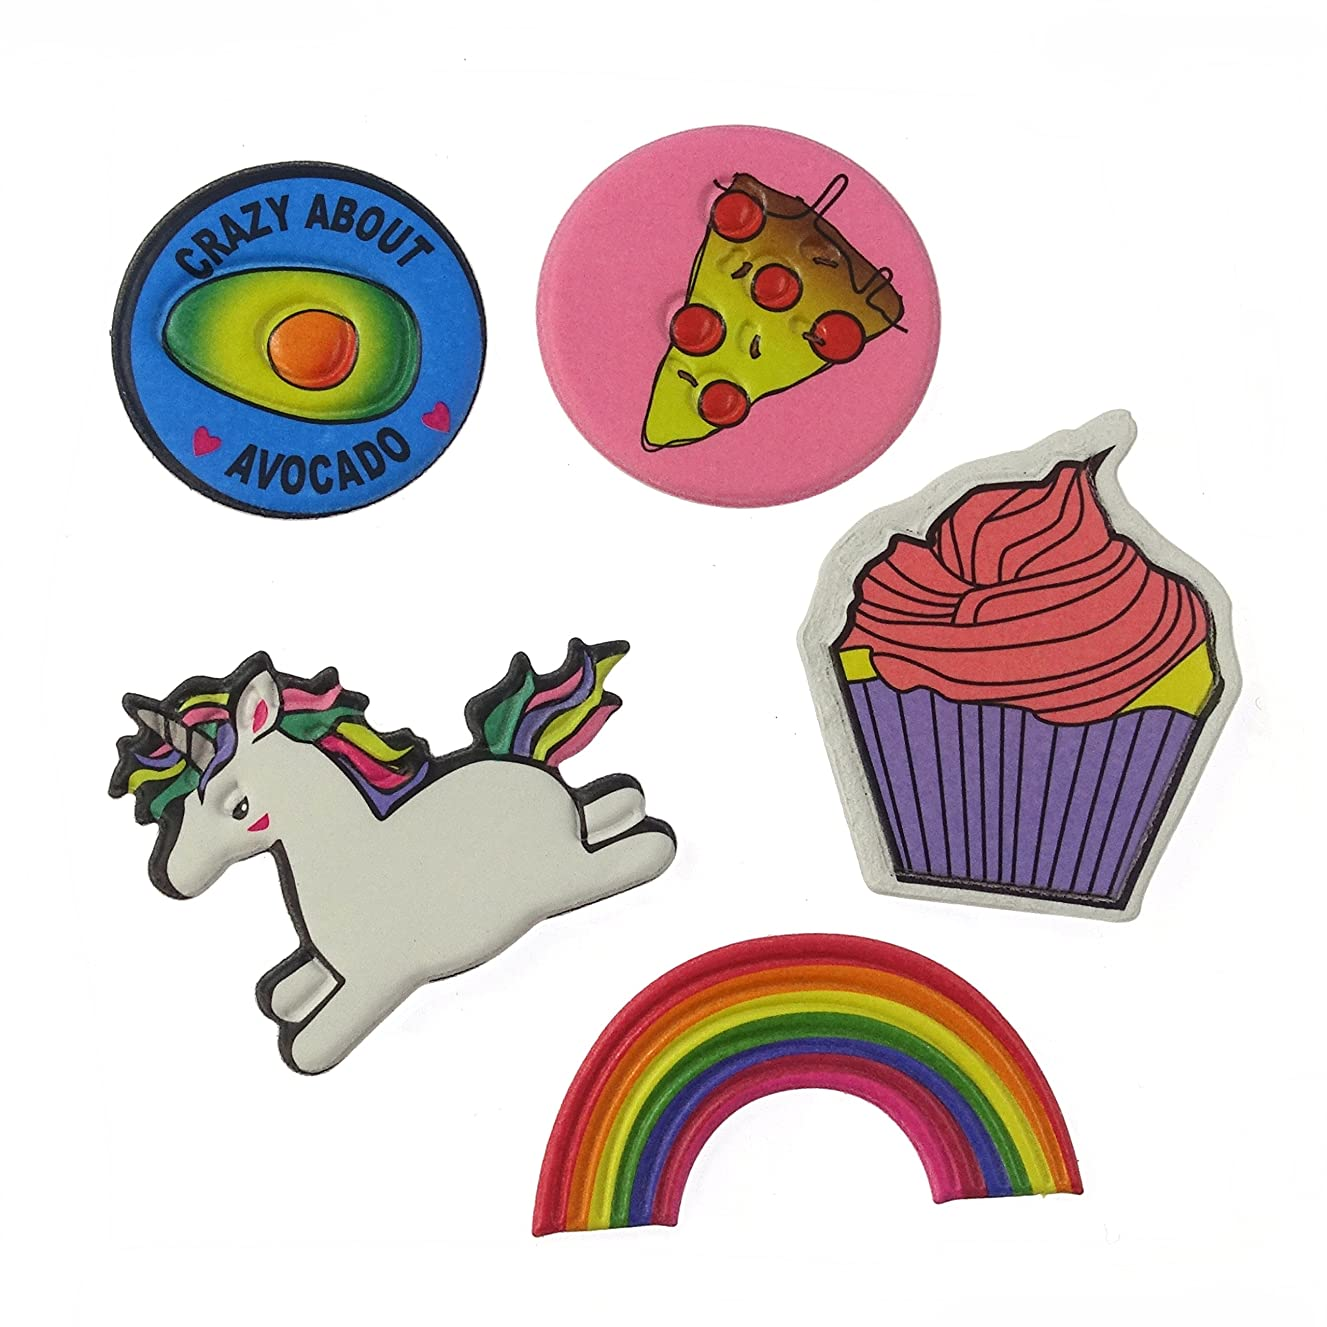 Polyurethane Padded Sticker Appliques Patches 5 Pieces Set for Bag, Laptop, Clothes, Phone Case